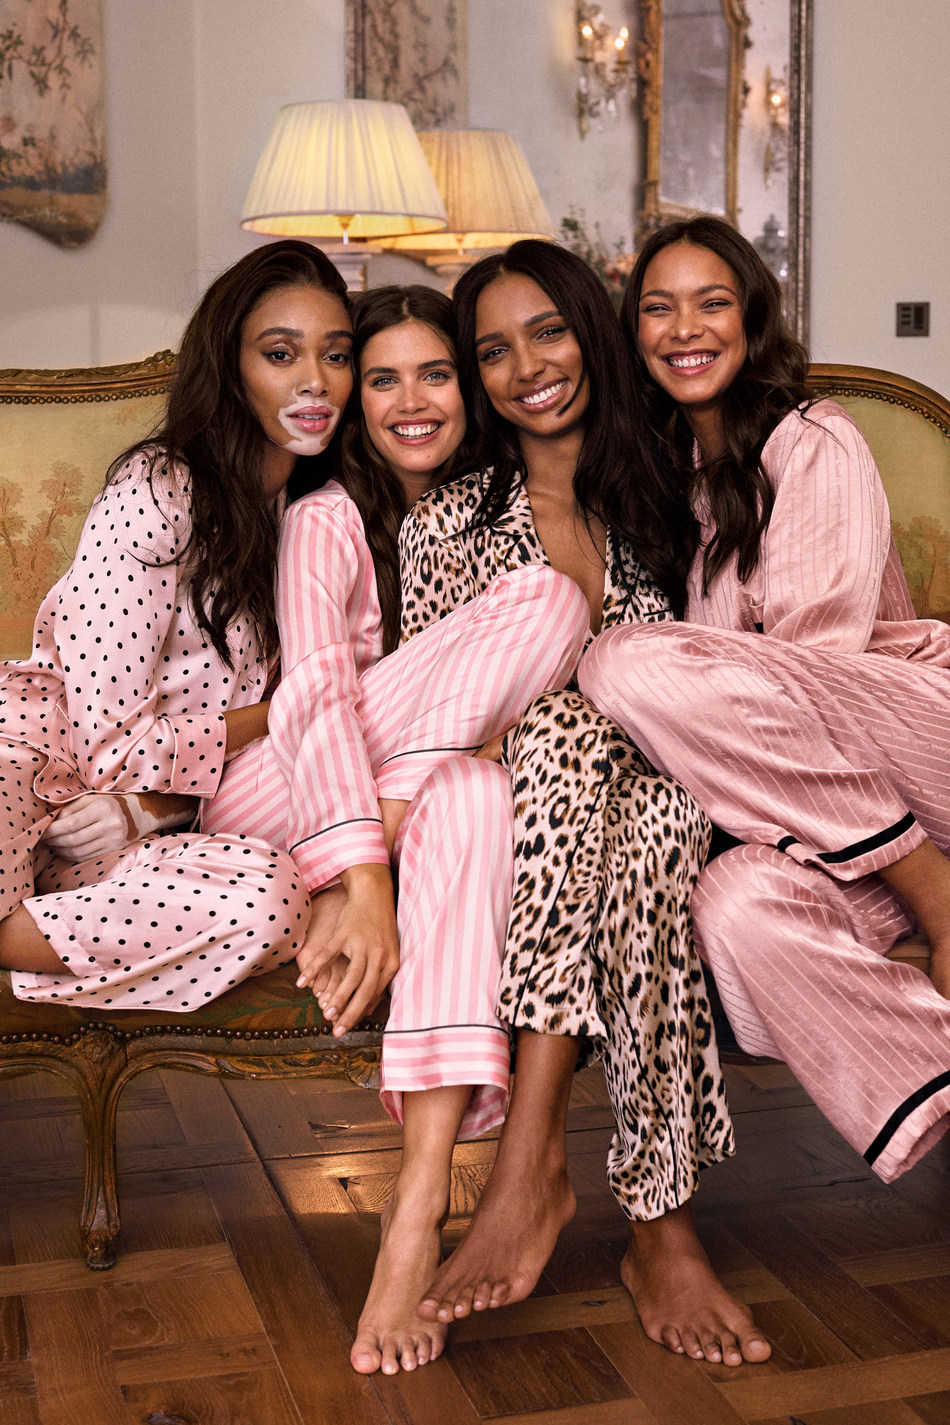 VICTORIA'S SECRET CELEBRATES GIVING TUESDAY WITH SUSAN G. KOMEN®